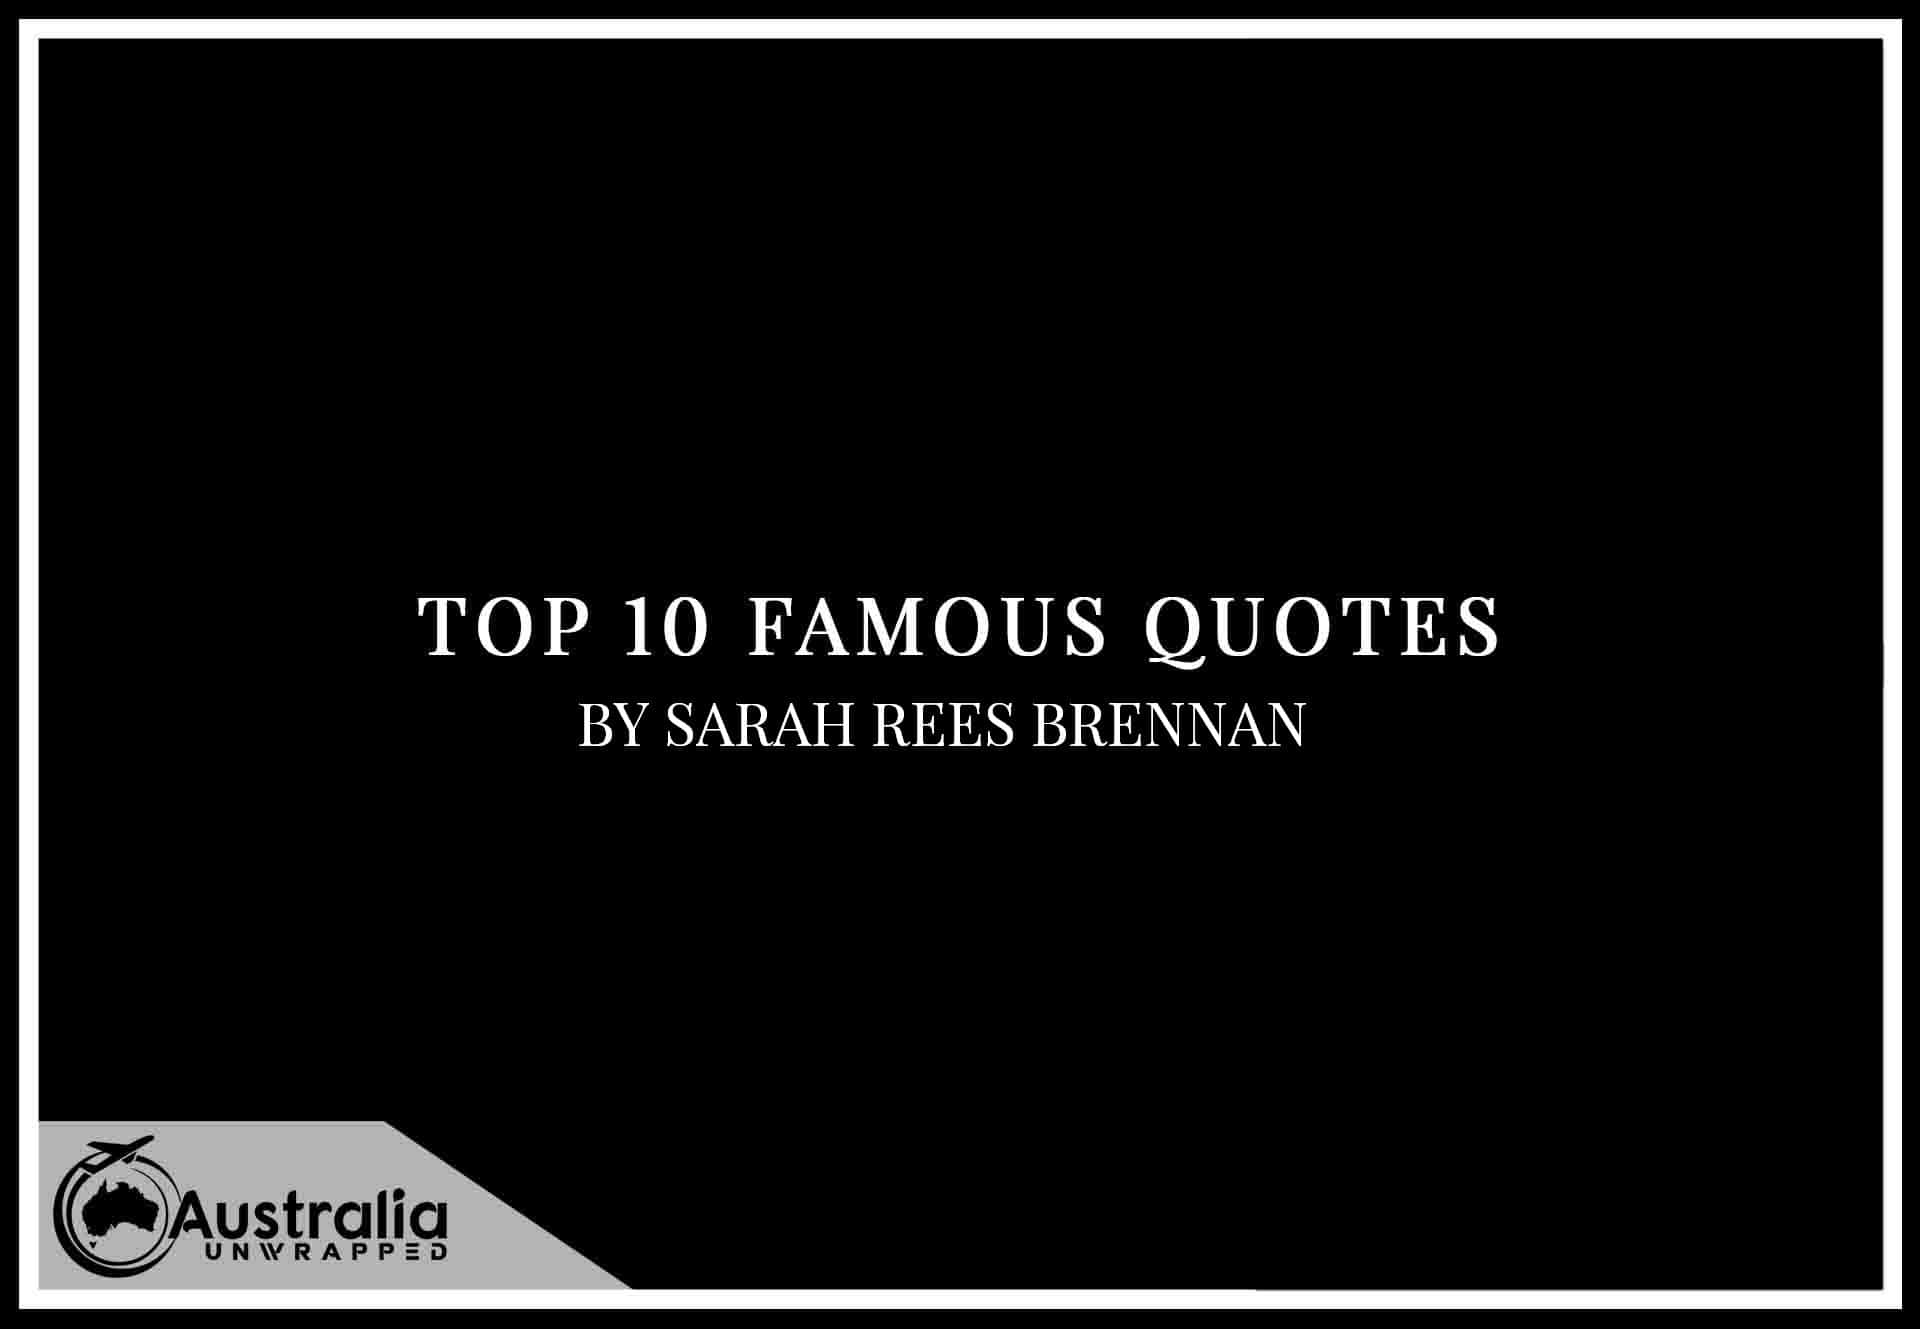 Top 10 Famous Quotes by Author Sarah Rees Brennan